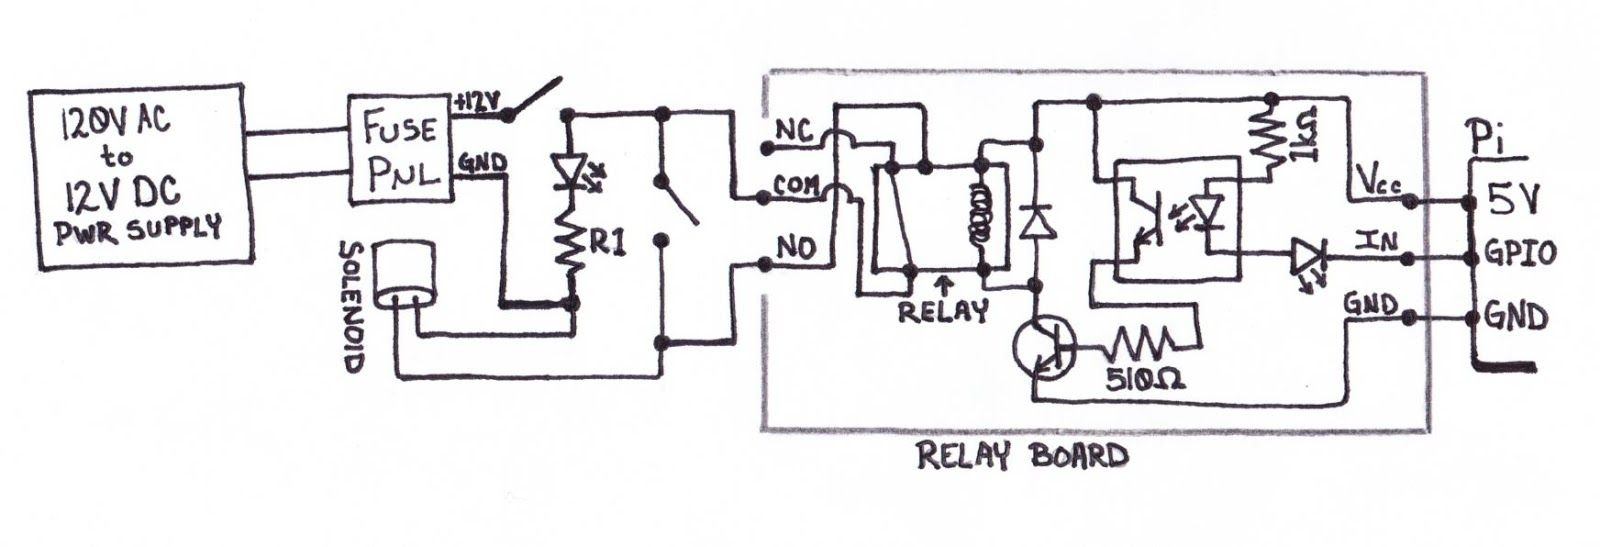 hight resolution of circuit diagram for operating a solenoid valve with a raspberry pi to control sprinklers to water the garden raspberry pi solenoid valve sprinklers